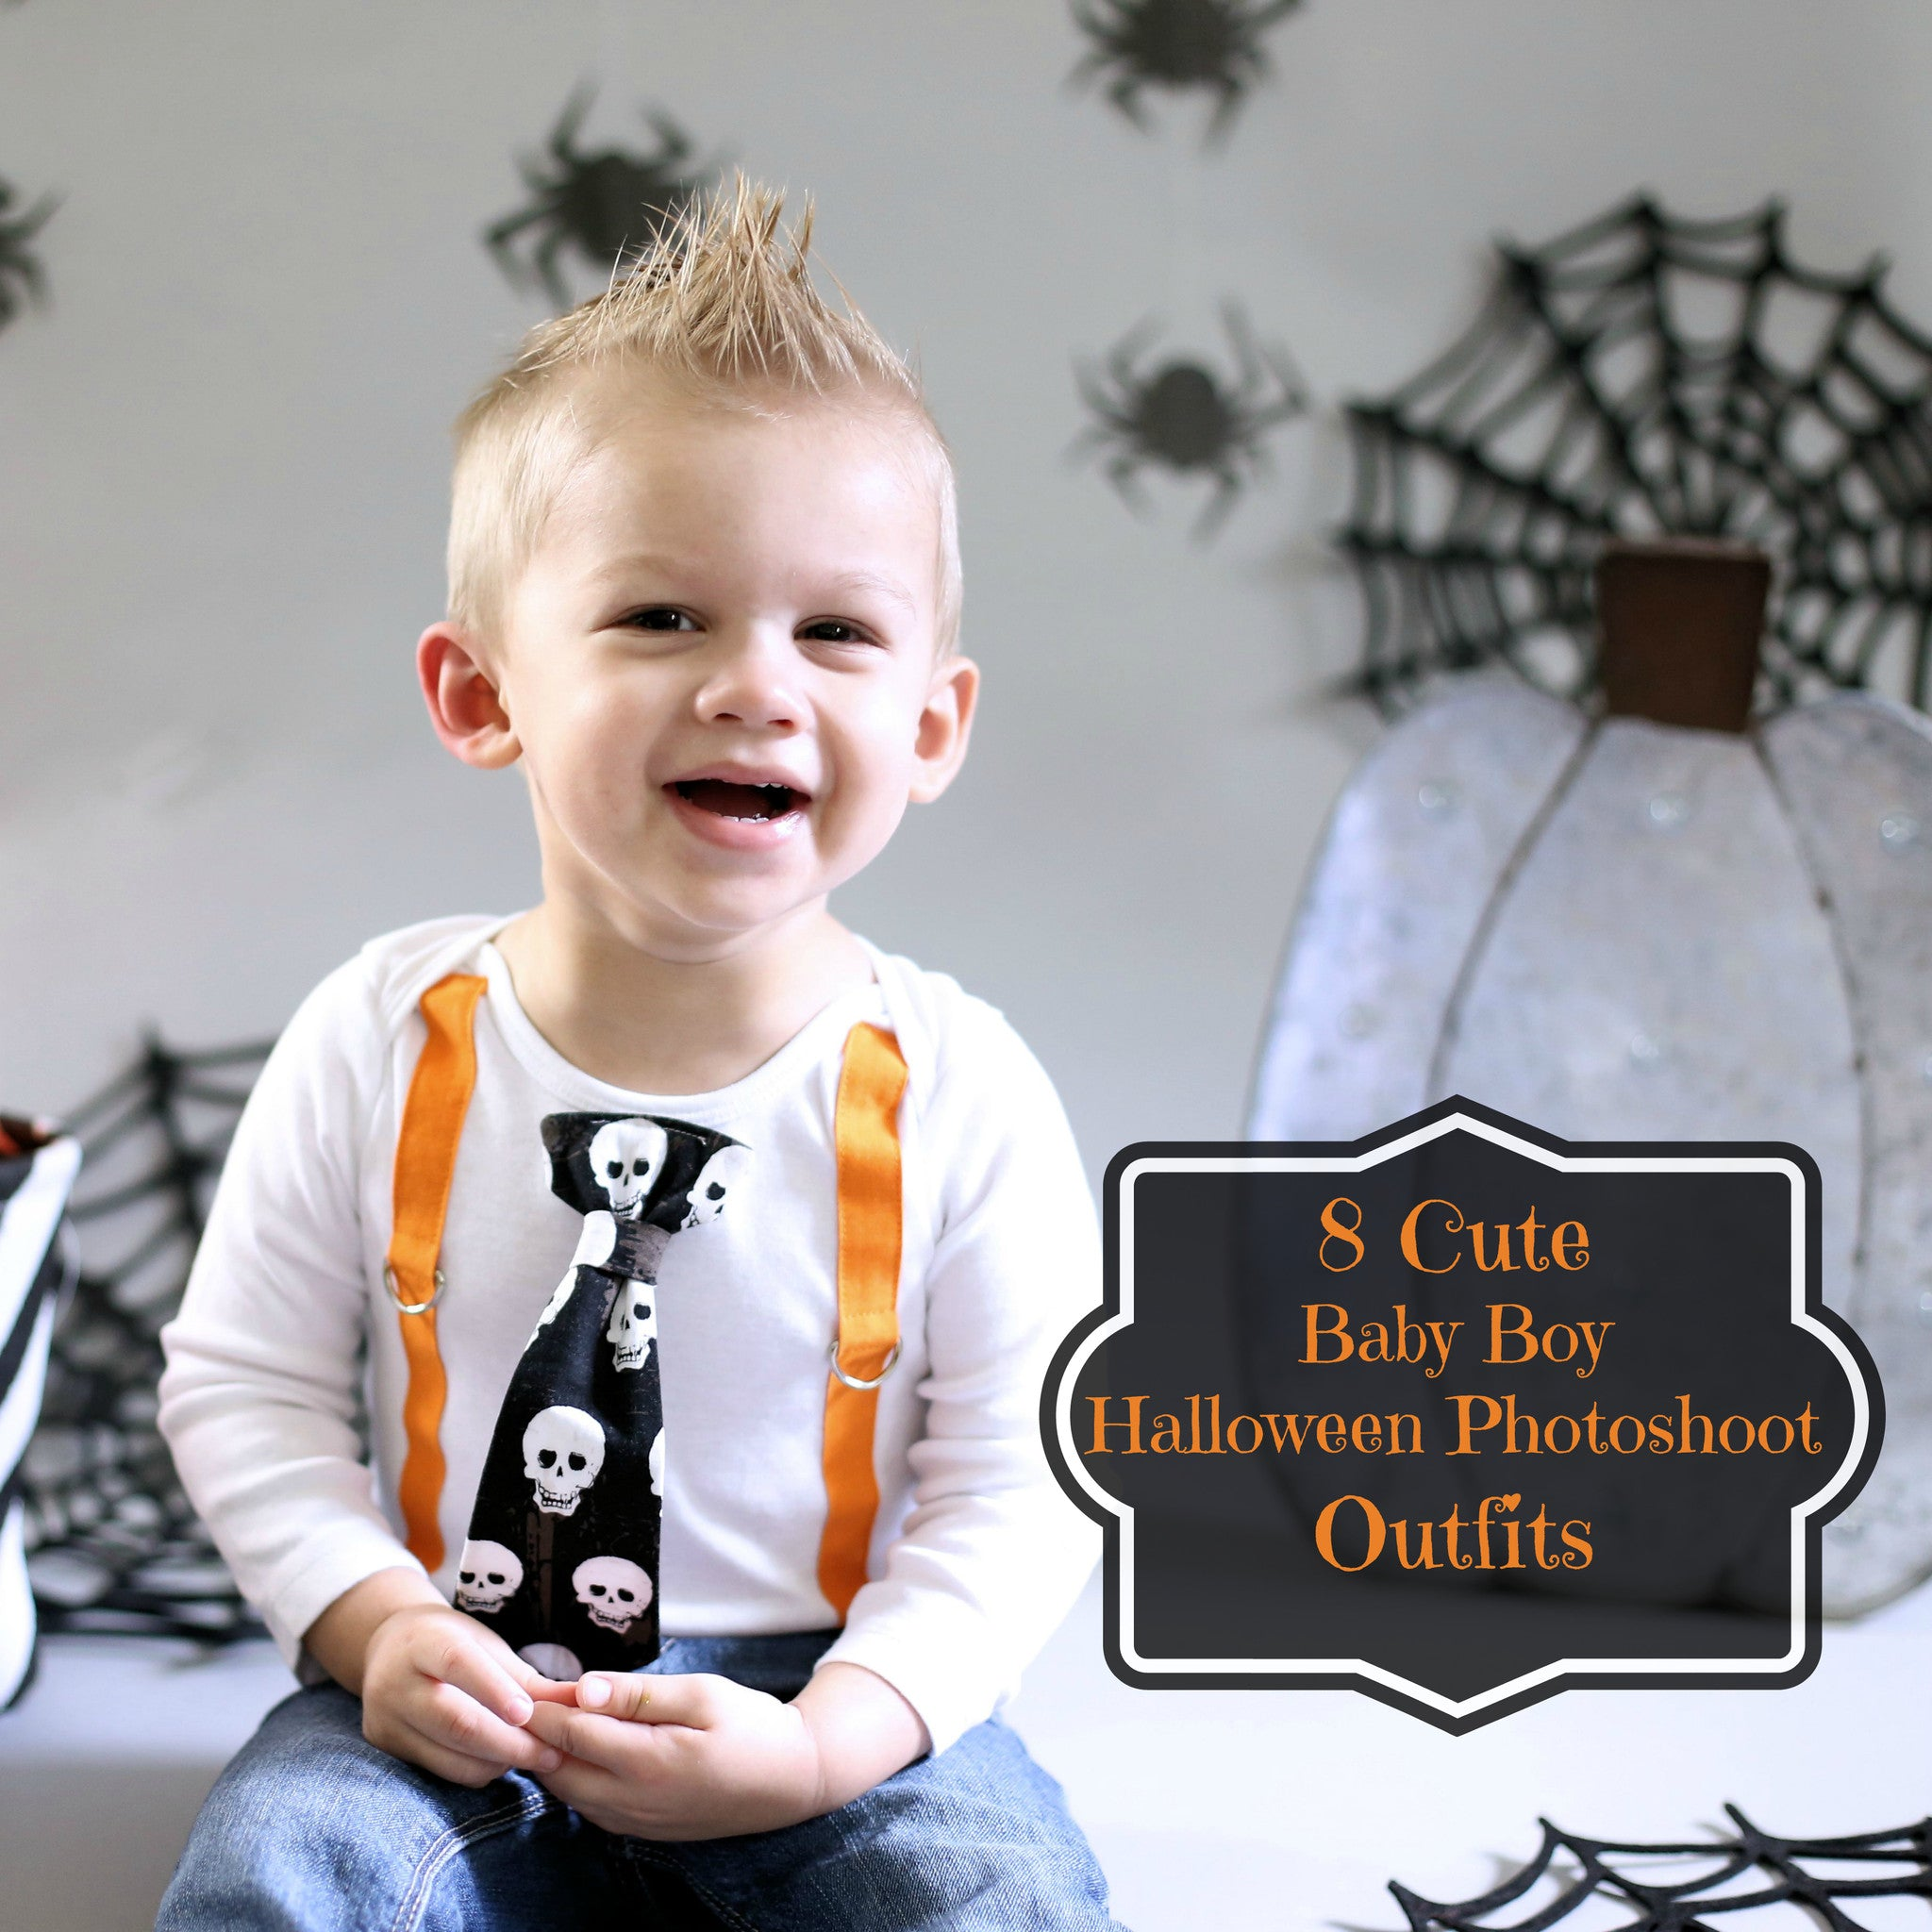 8 ridiculously cute baby boy halloween photoshoot outfit ideas